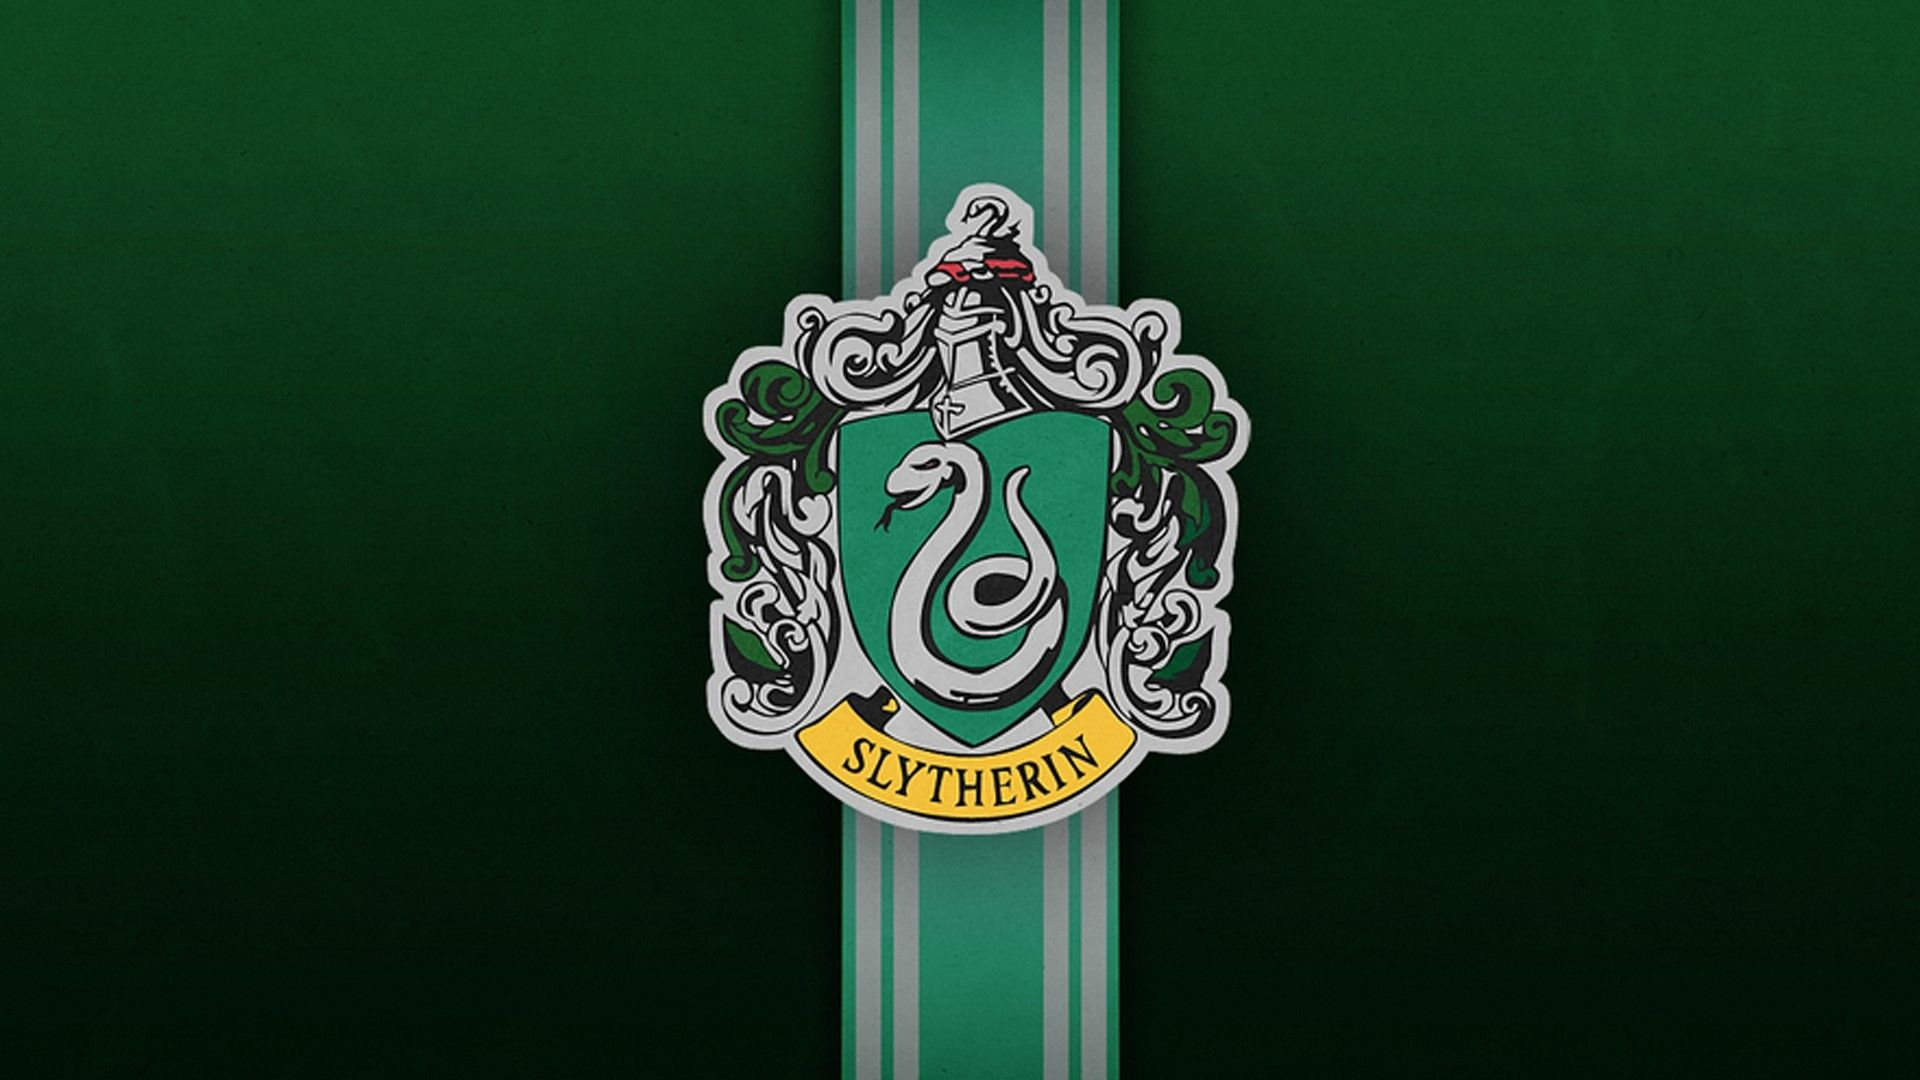 1920x1080 Slytherin Wallpapers Tumblr (81+ background pictures)